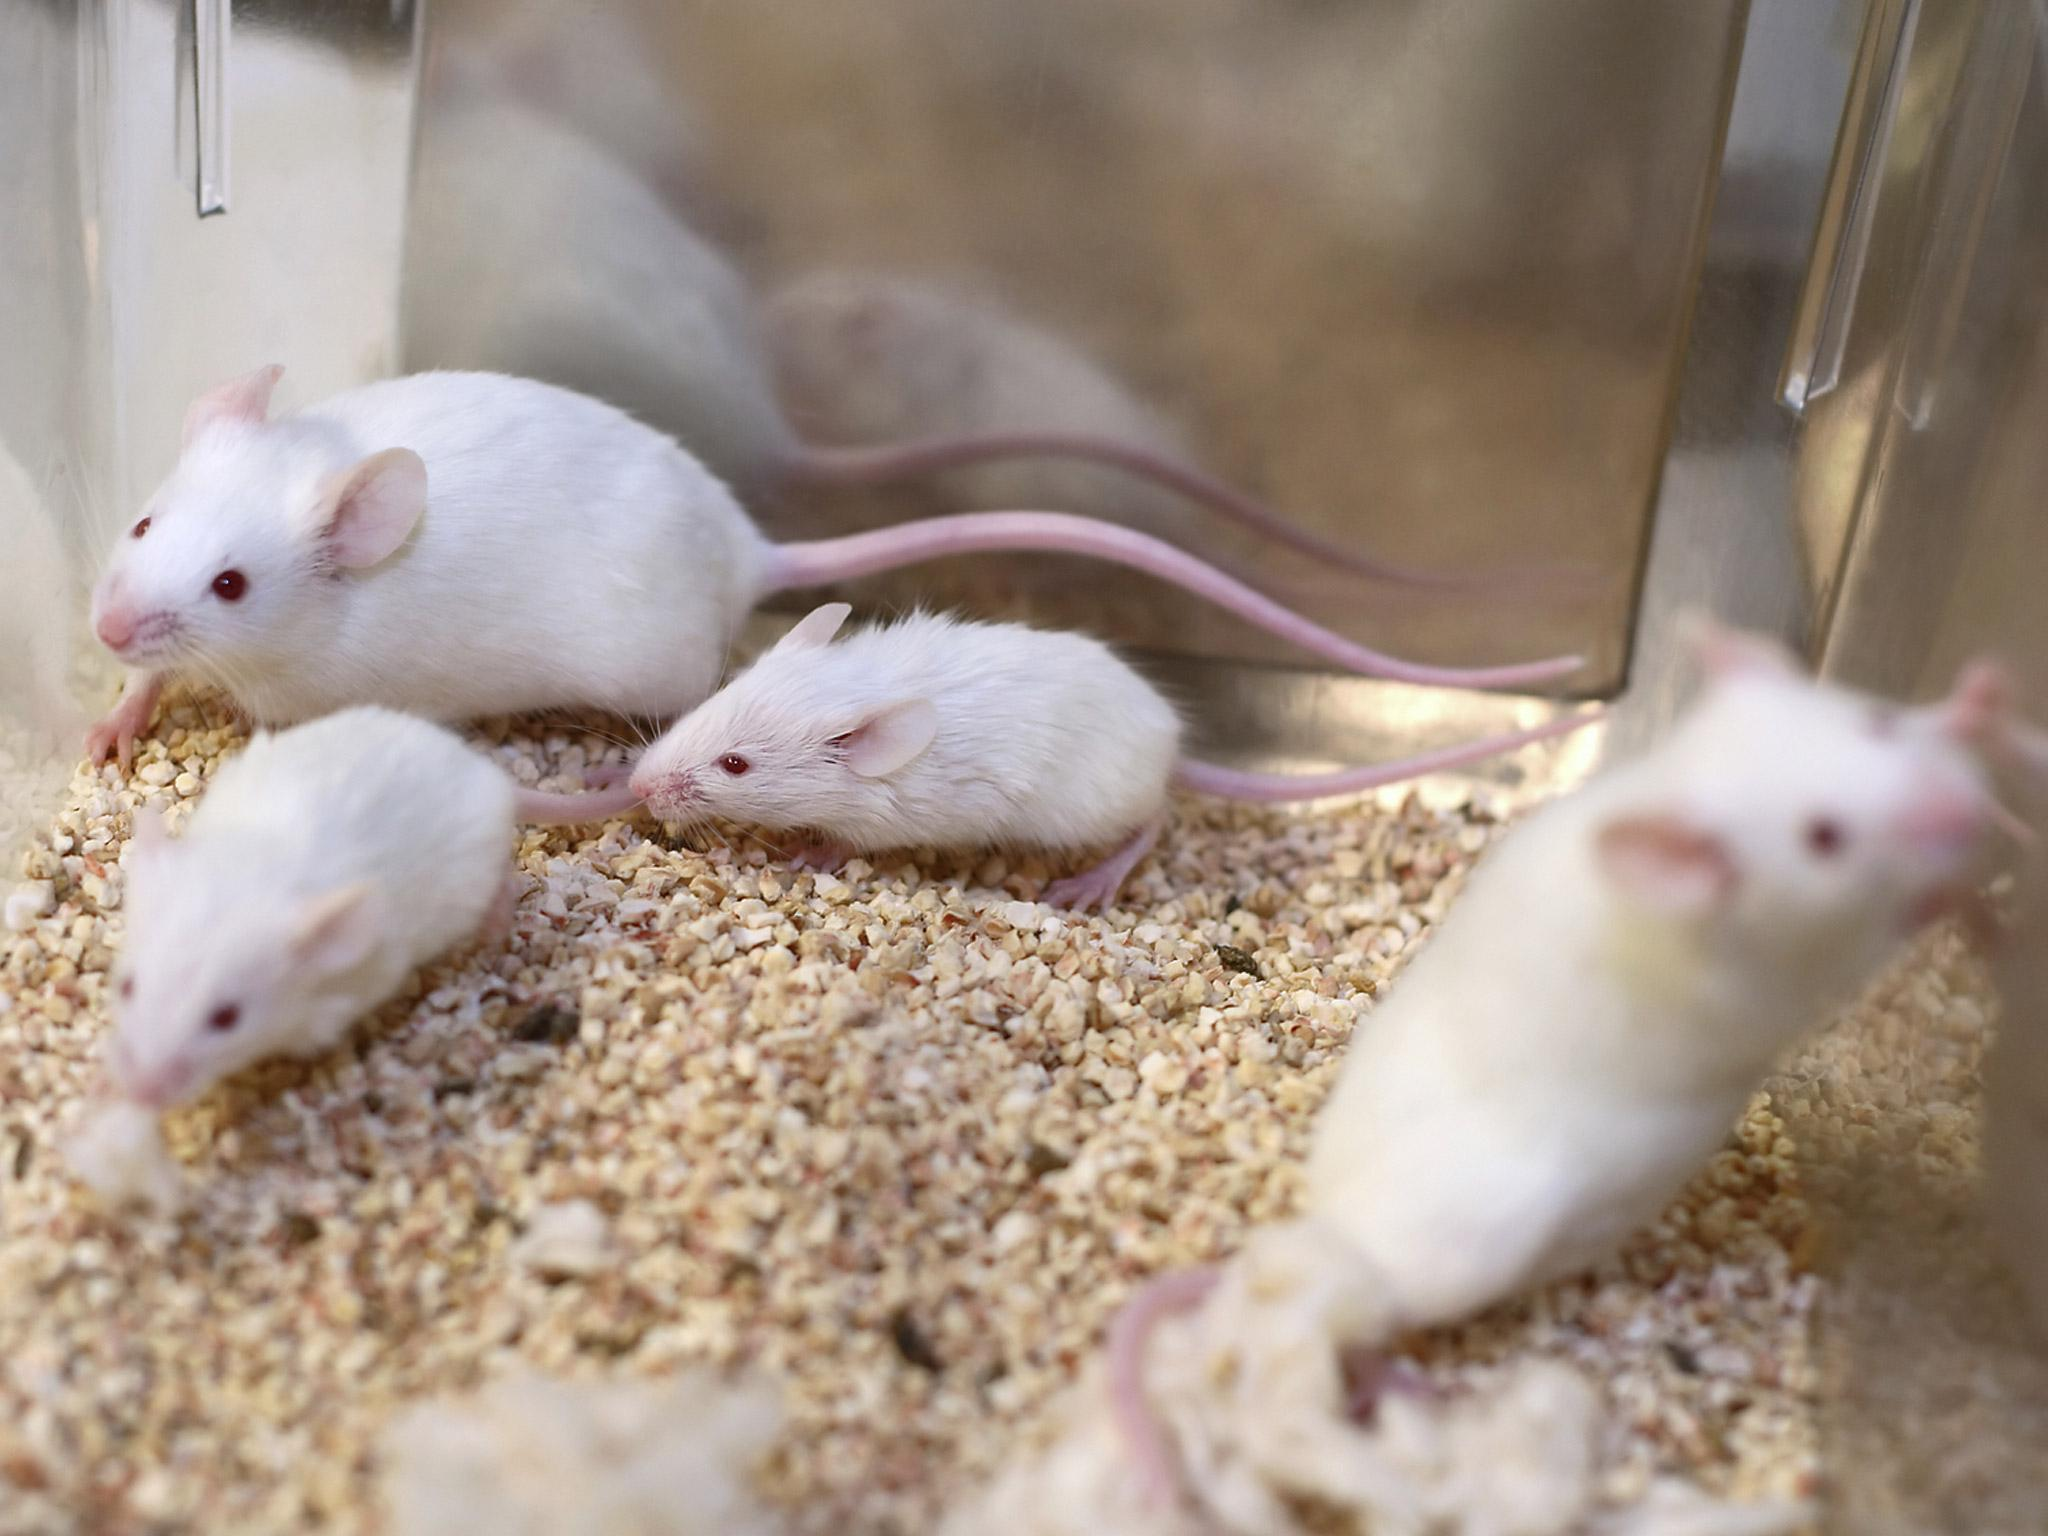 Scientists hail 'promising cure' for HIV after study in mice